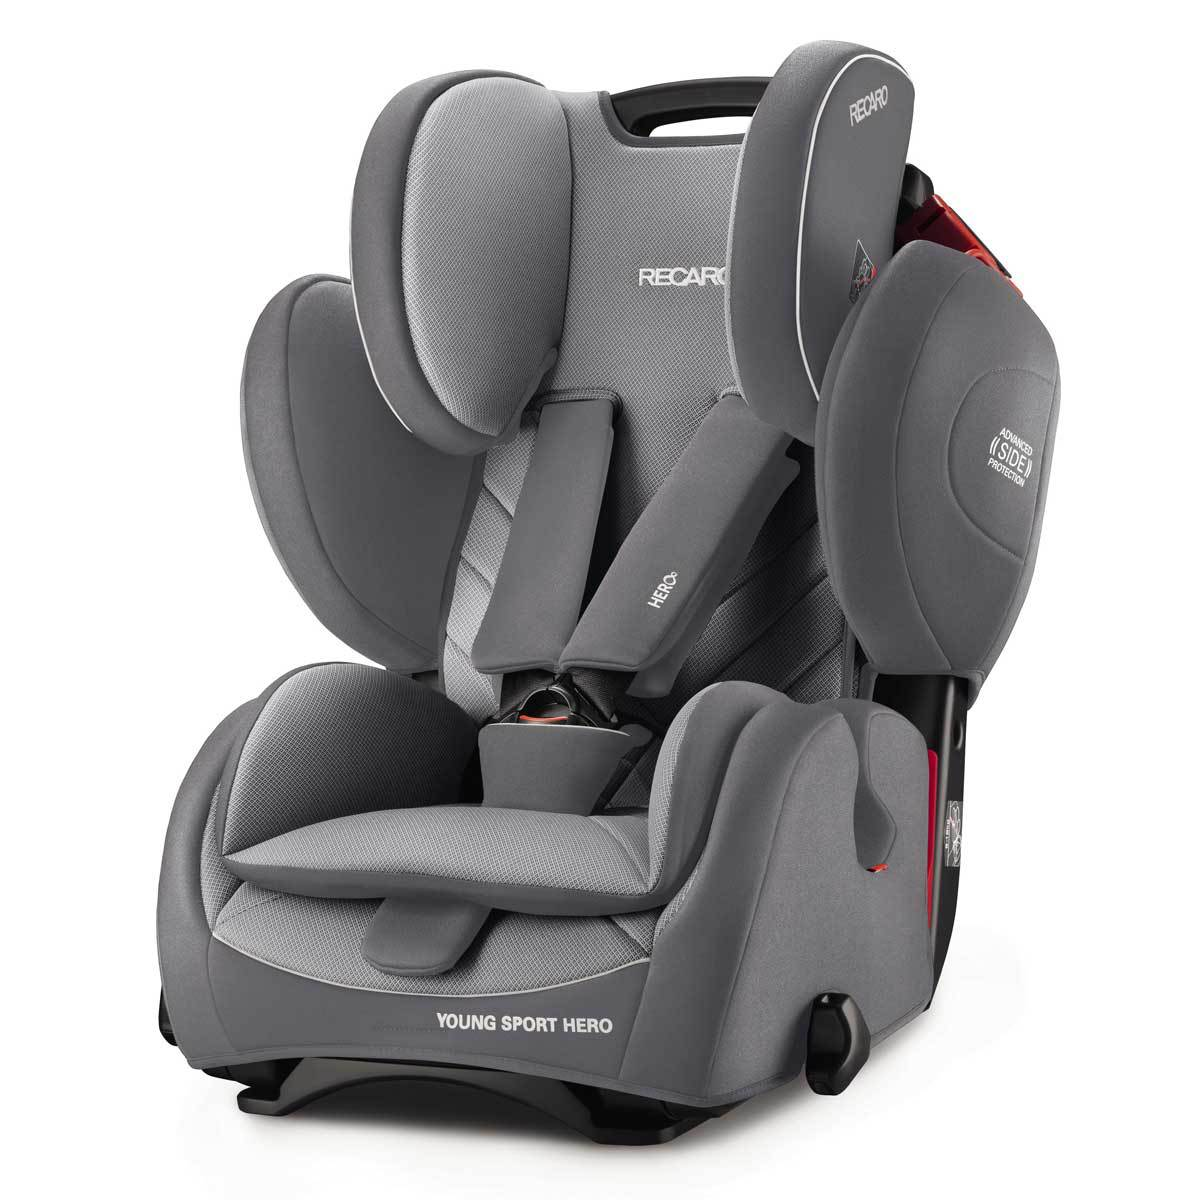 recaro si ge auto young sport hero groupe 1 2 3 aluminium grey si ge auto et coque recaro. Black Bedroom Furniture Sets. Home Design Ideas